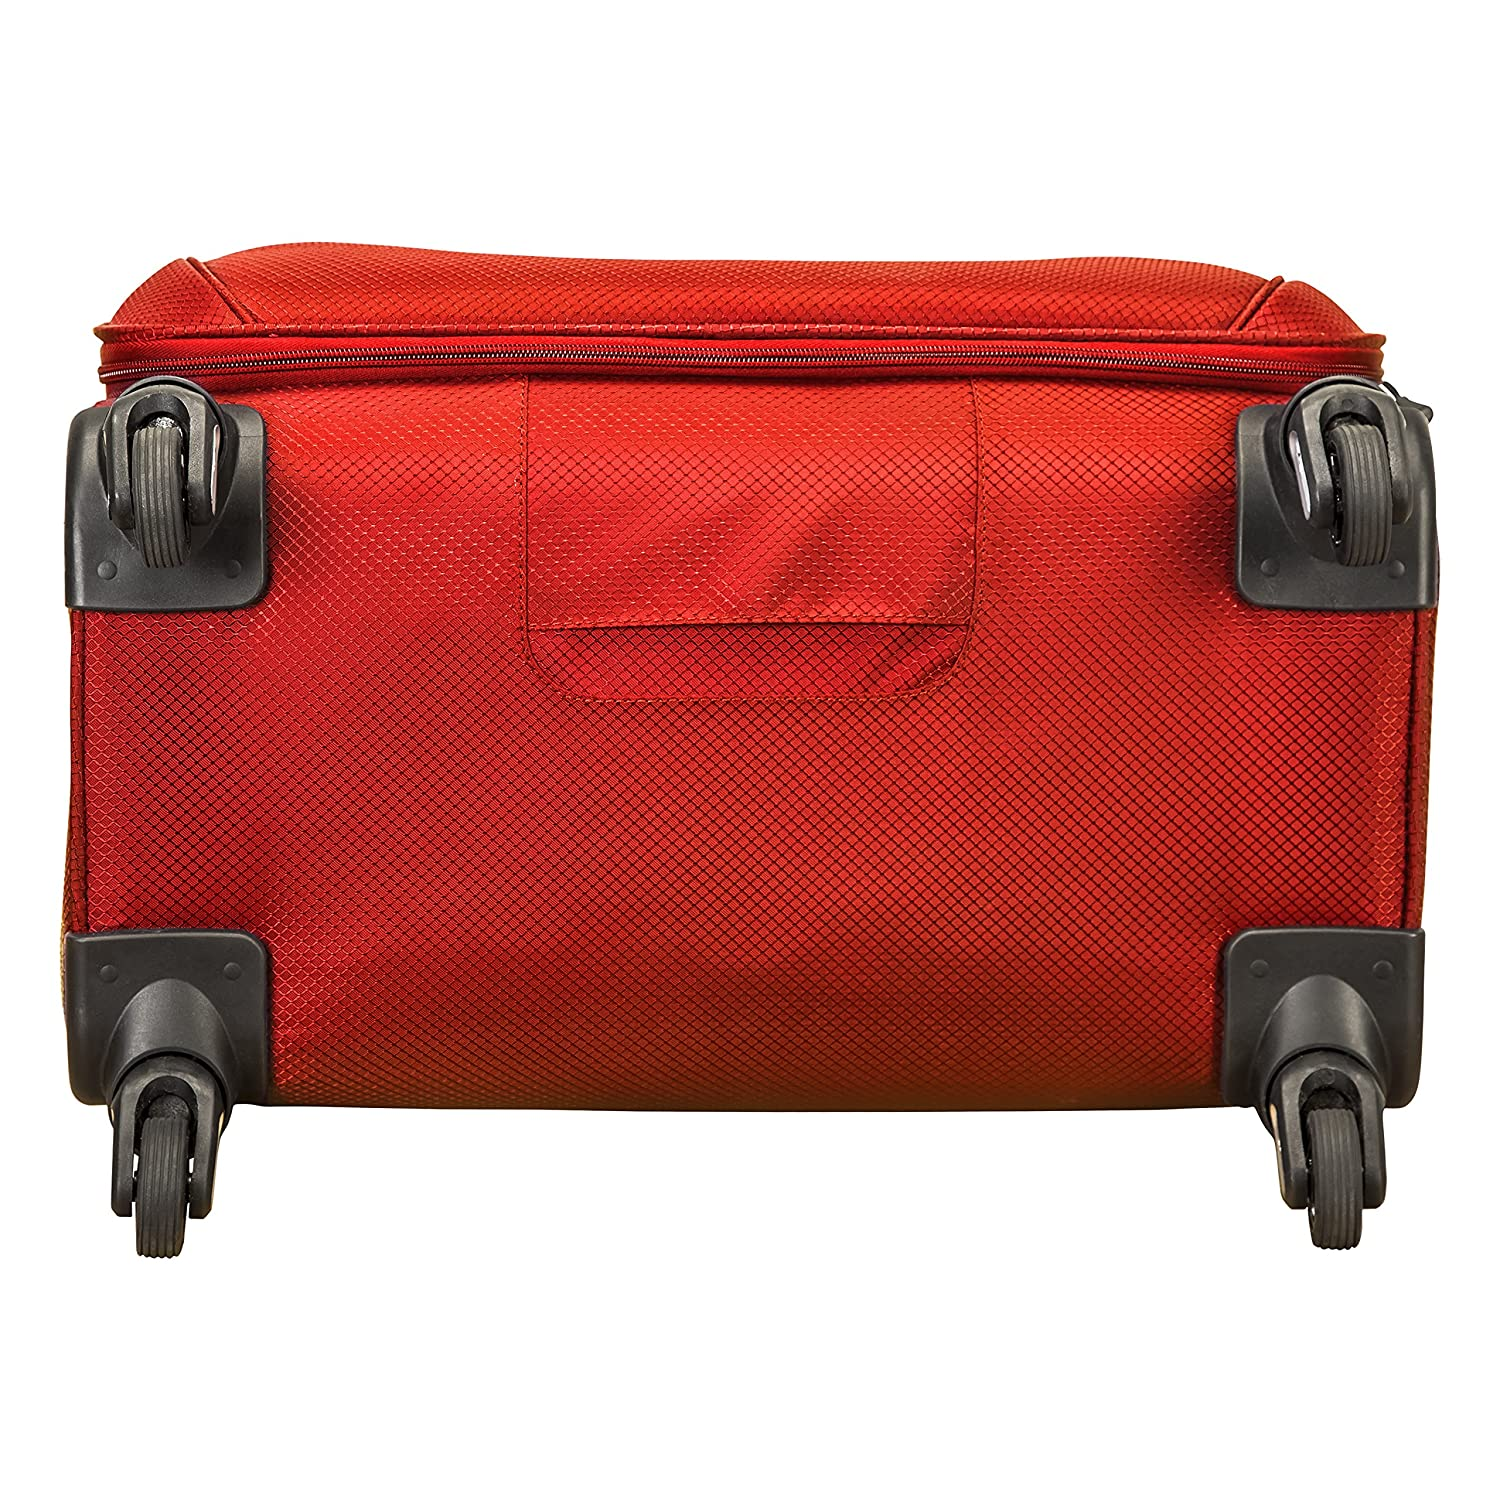 fdbc85f36 Amazon.com | Skyway Mirage 2.0 28-inch 4-Wheel Spinner Luggage, True Red |  Suitcases